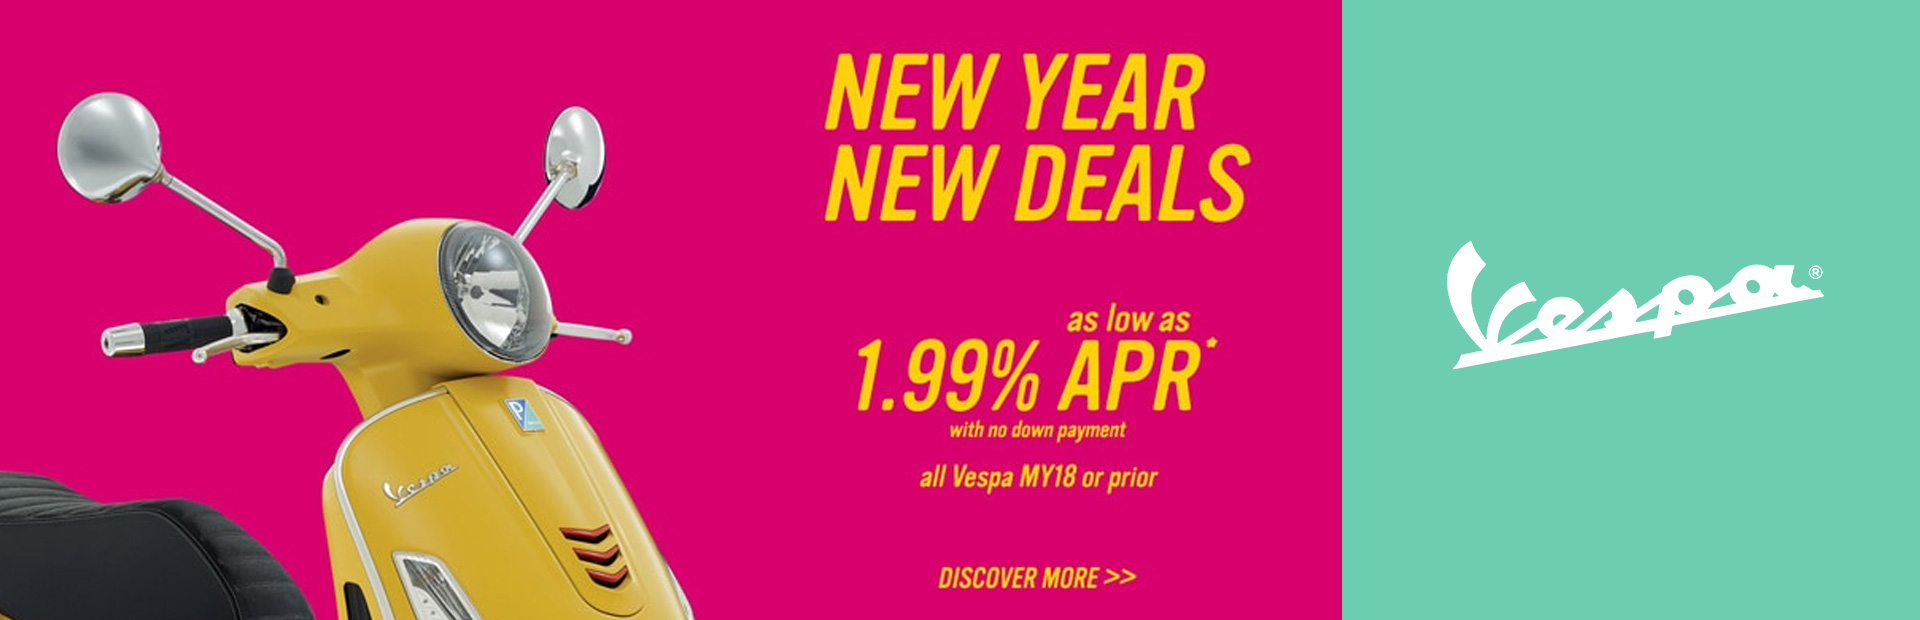 Vespa: New Year New Deals